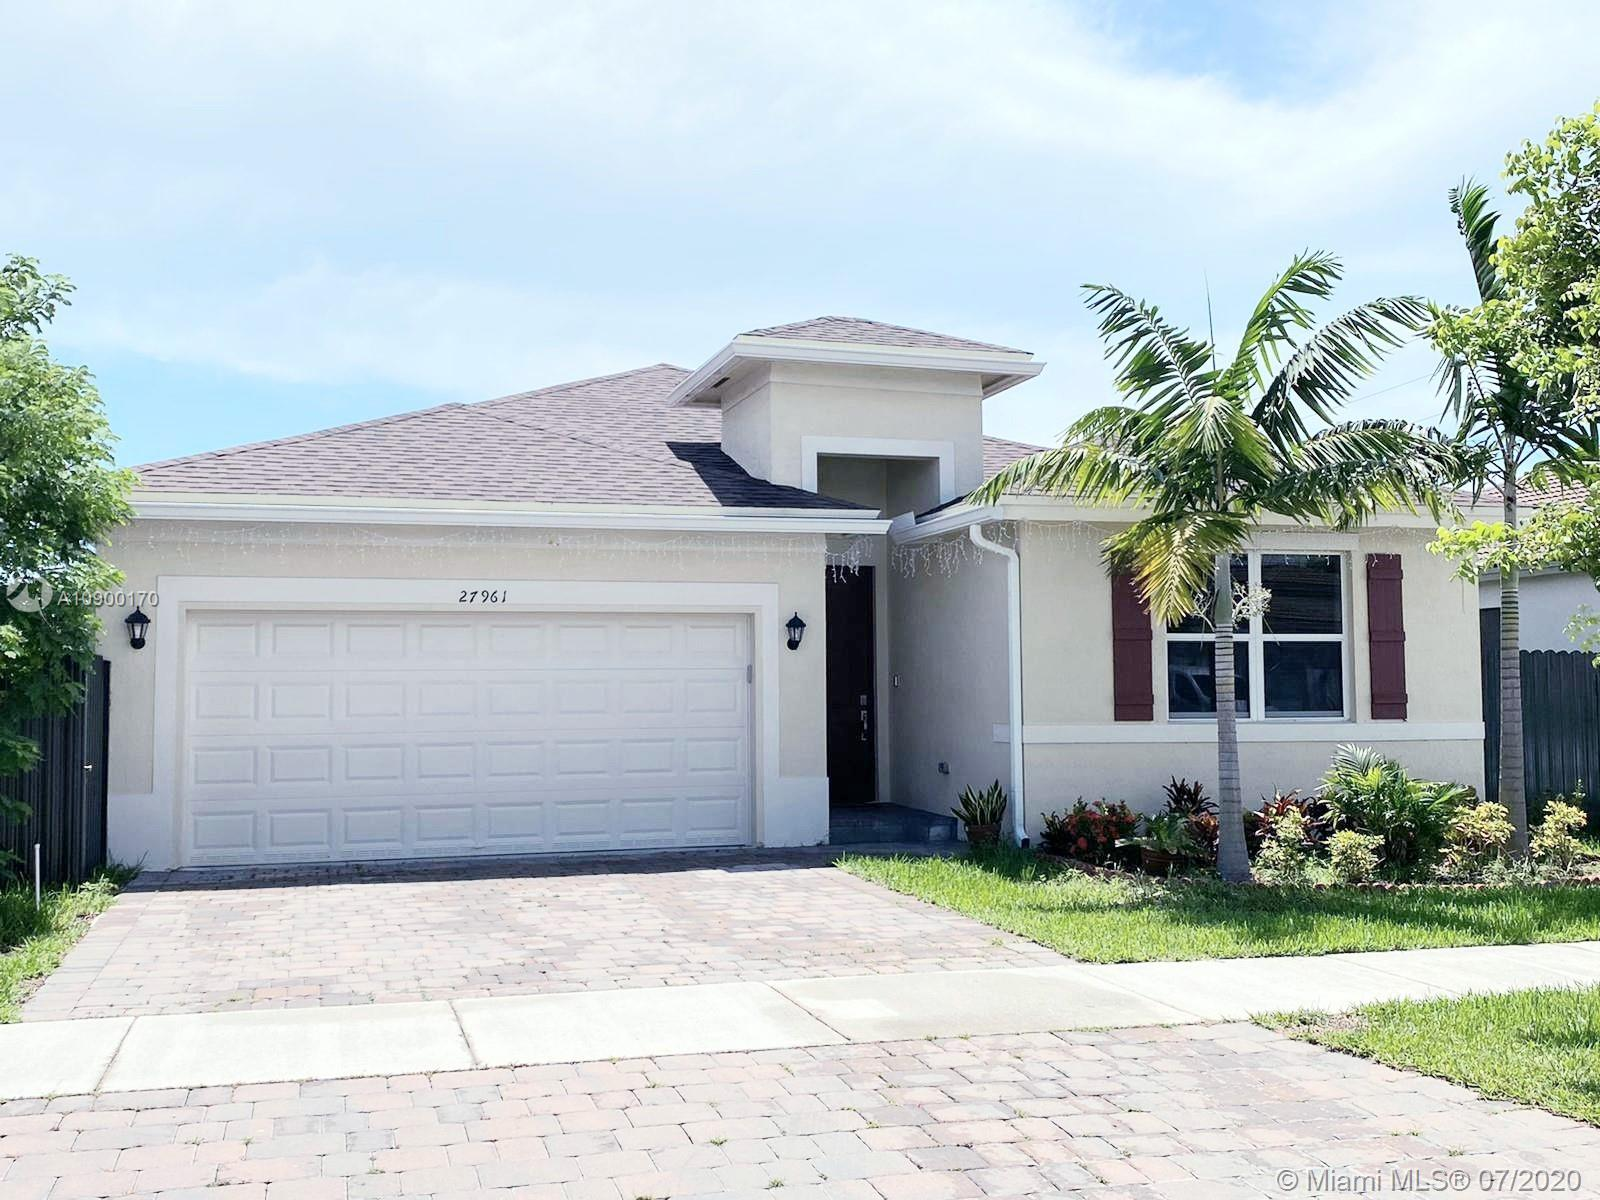 27961 SW 134th Ct Property Photo - Homestead, FL real estate listing